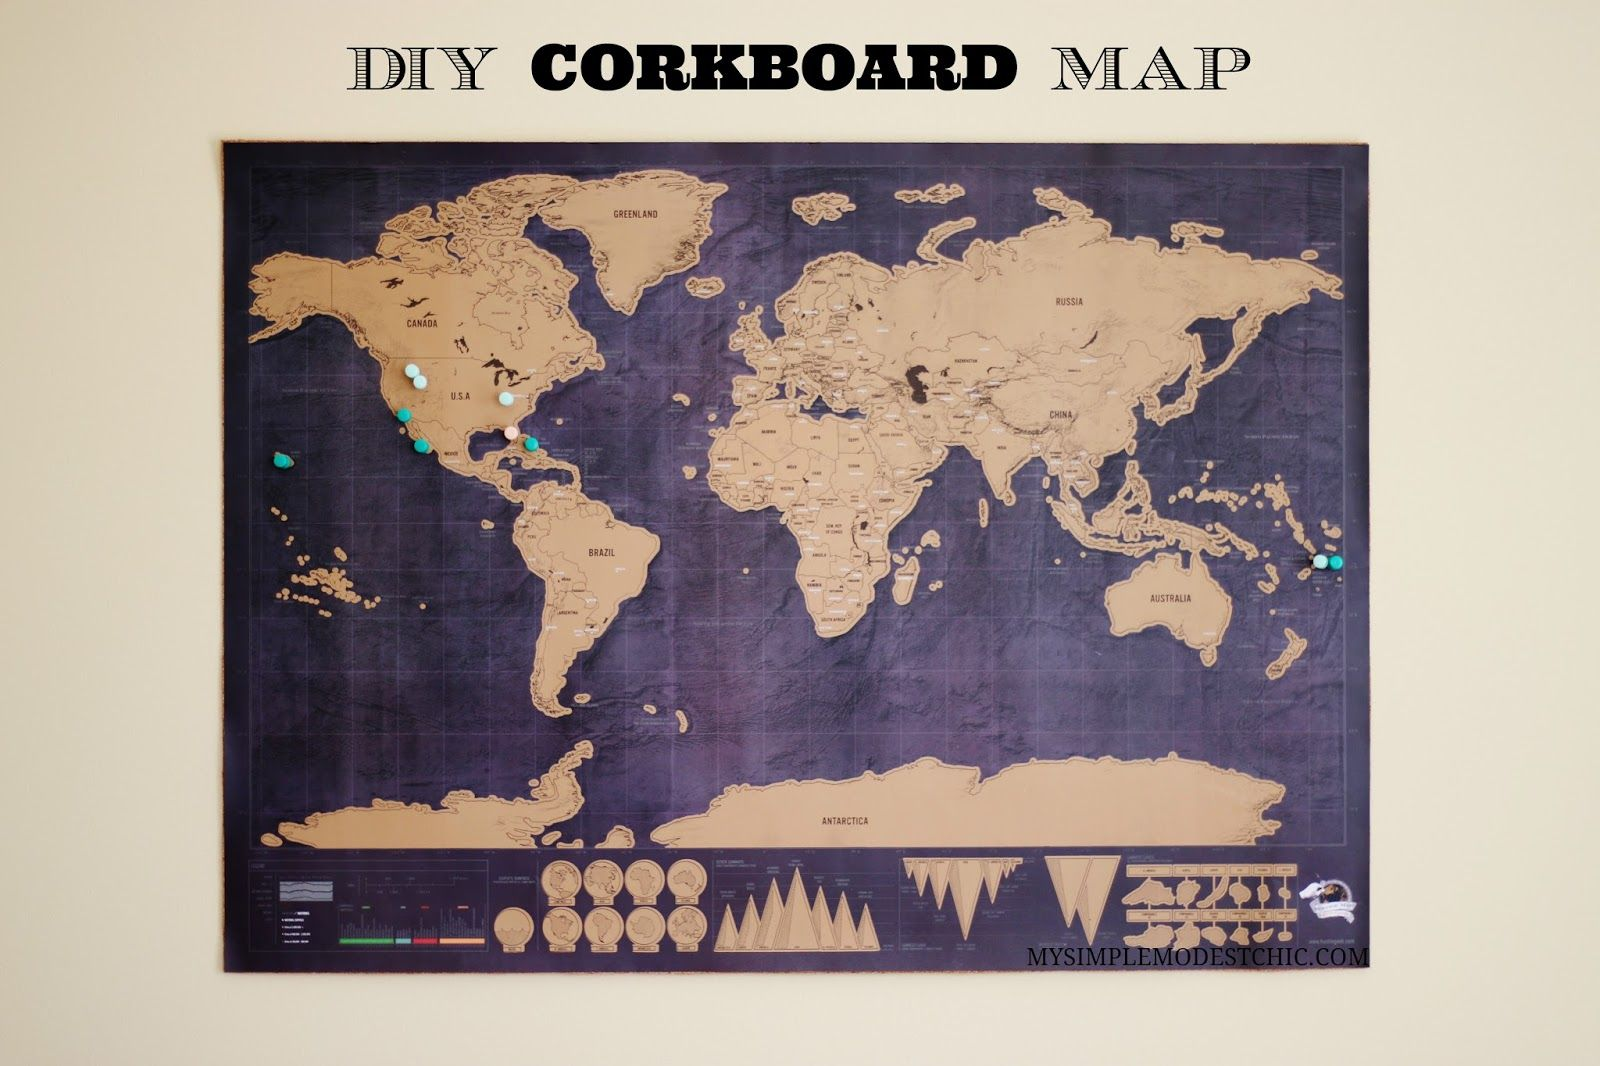 Map corkboard diy tutorial world adventure discover maps map corkboard diy tutorial world adventure discover gumiabroncs Gallery